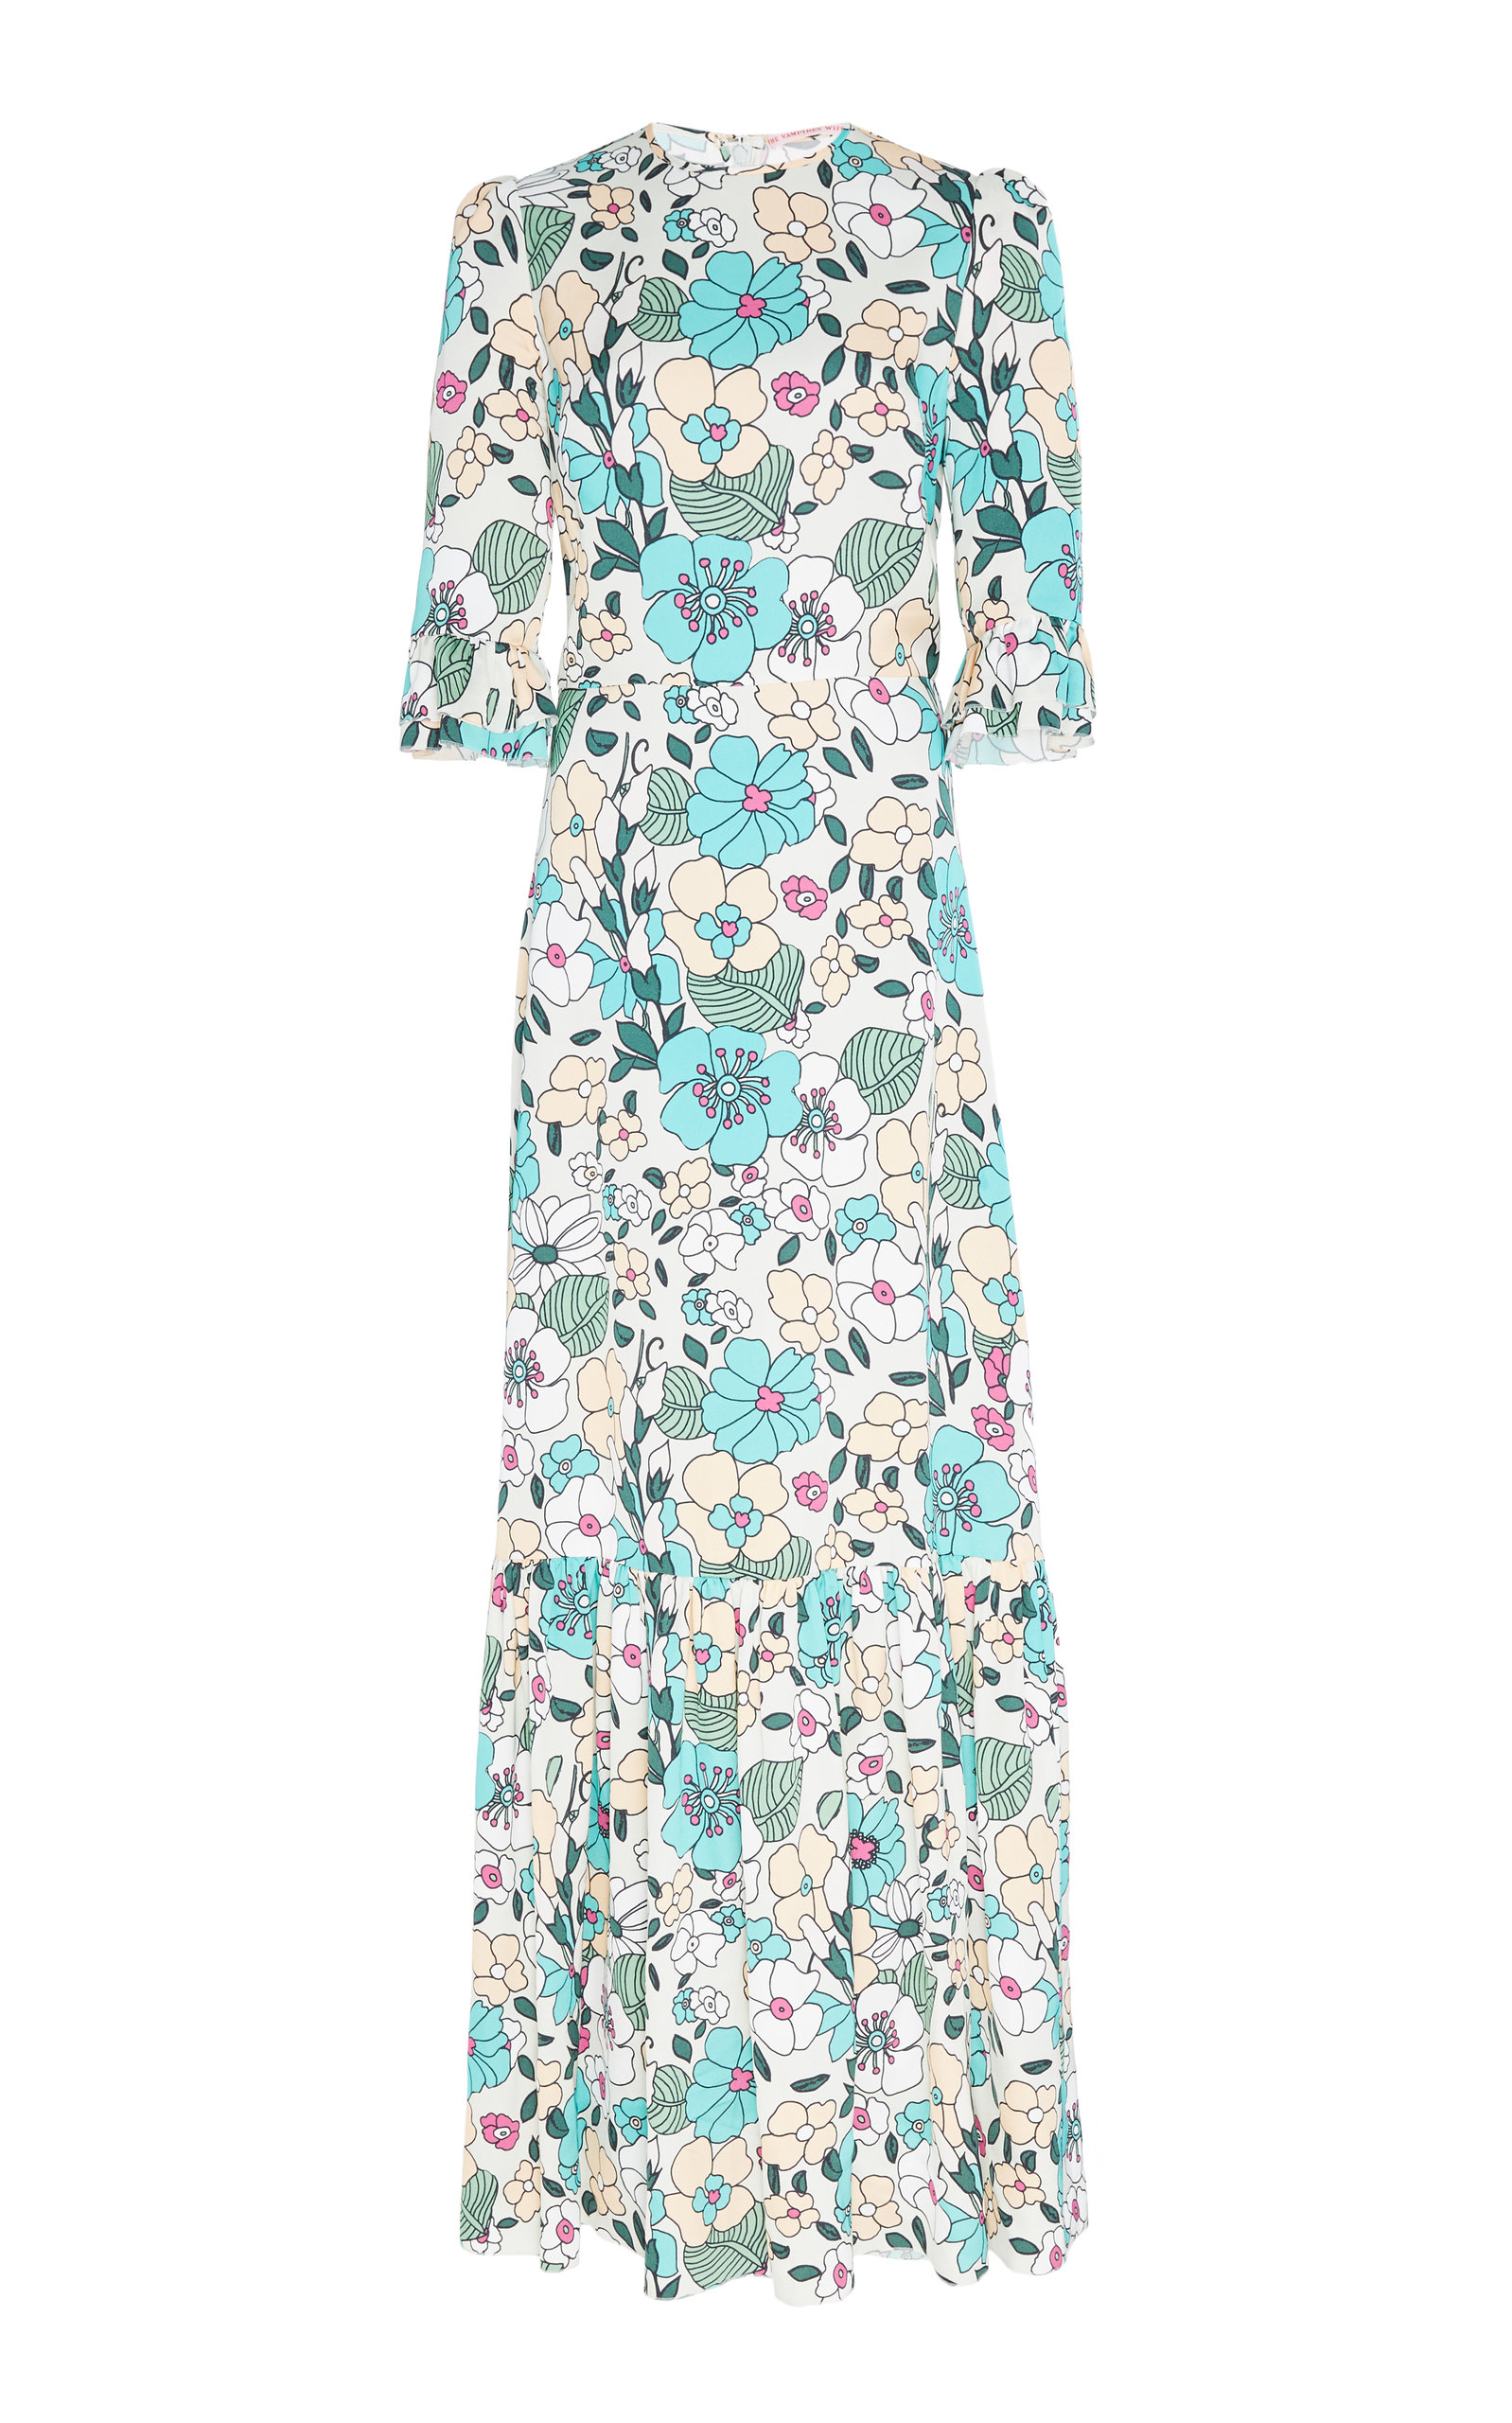 The Tea Floral Print Crepe Dress The Vampires Wife rS6Azg9kxh